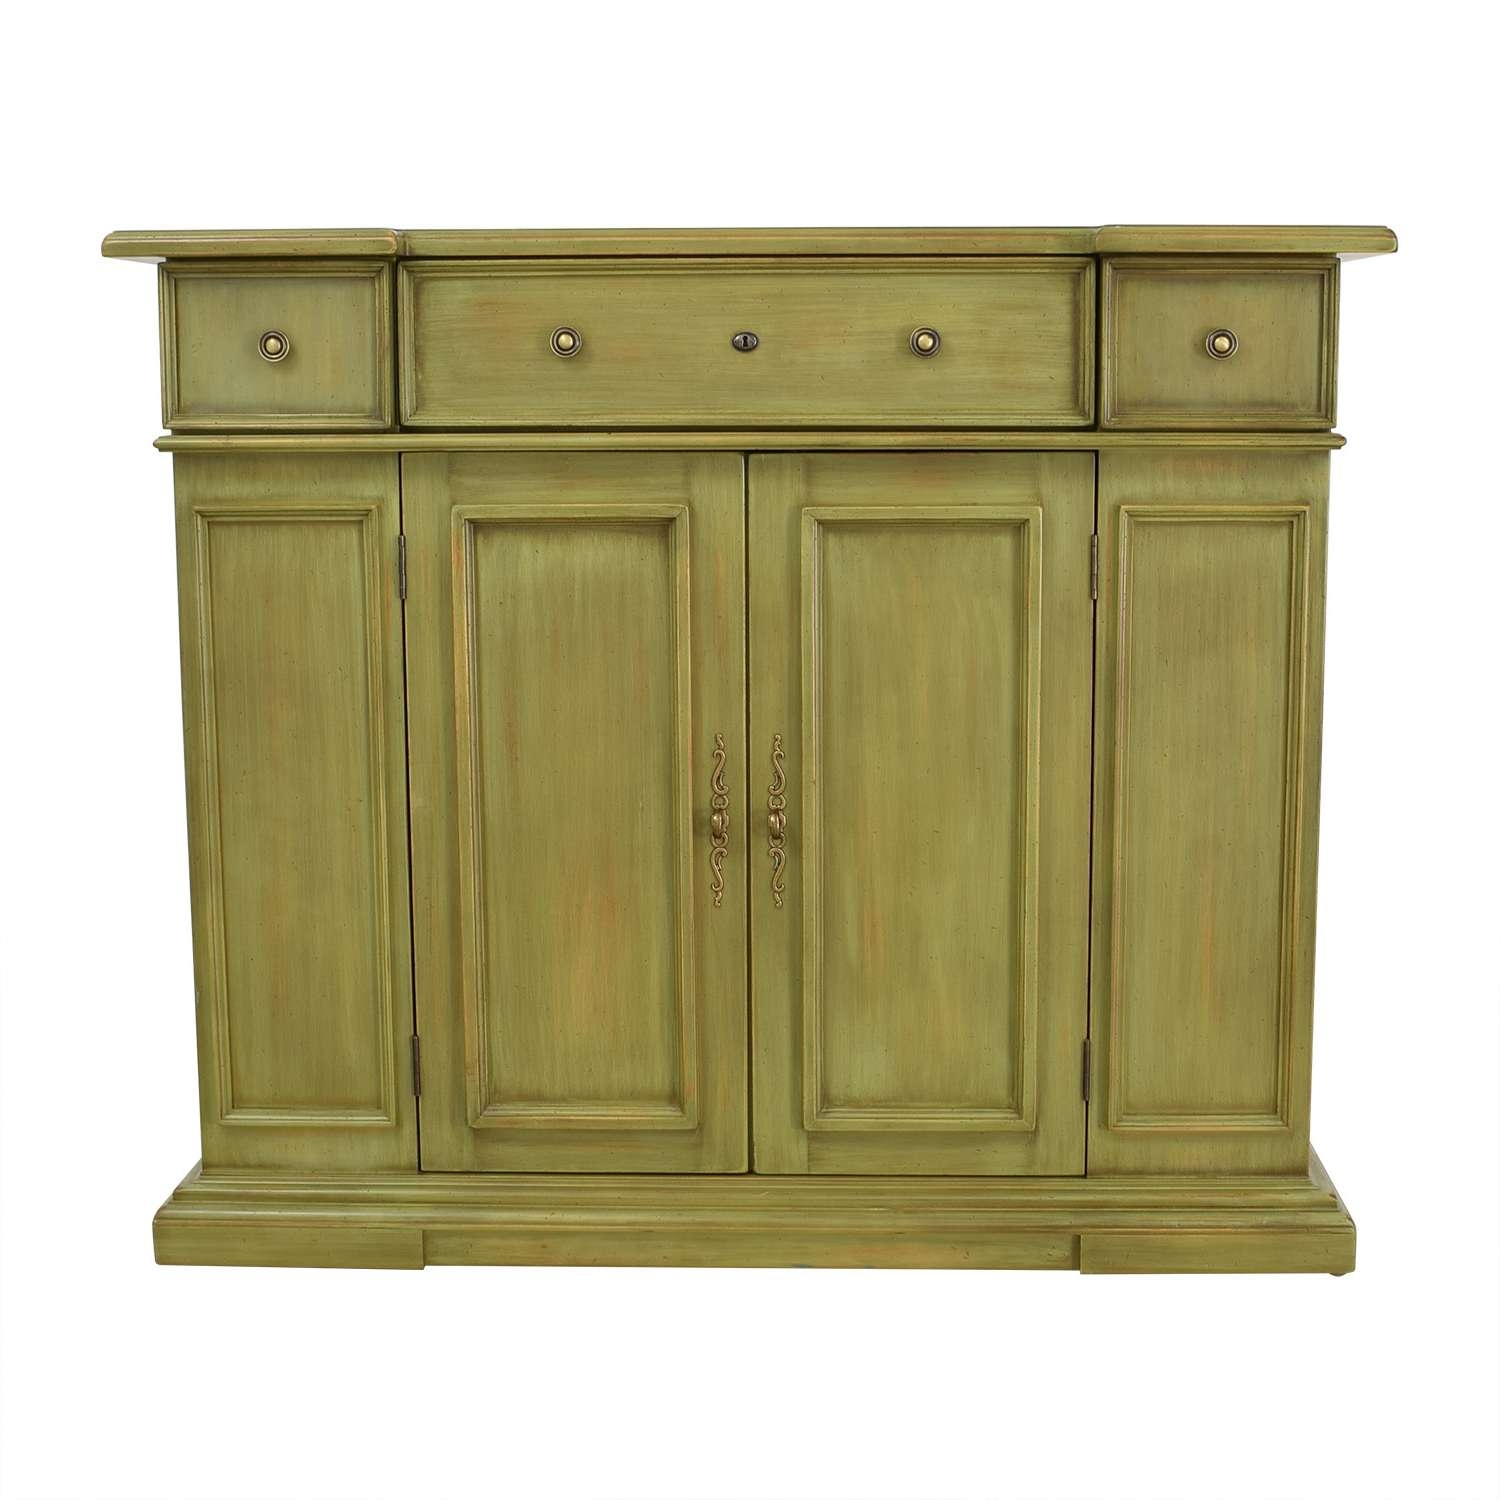 76% Off – Breakfront Breakfront Lime Green Cabinet With Storage Intended For Green Sideboards (View 1 of 20)